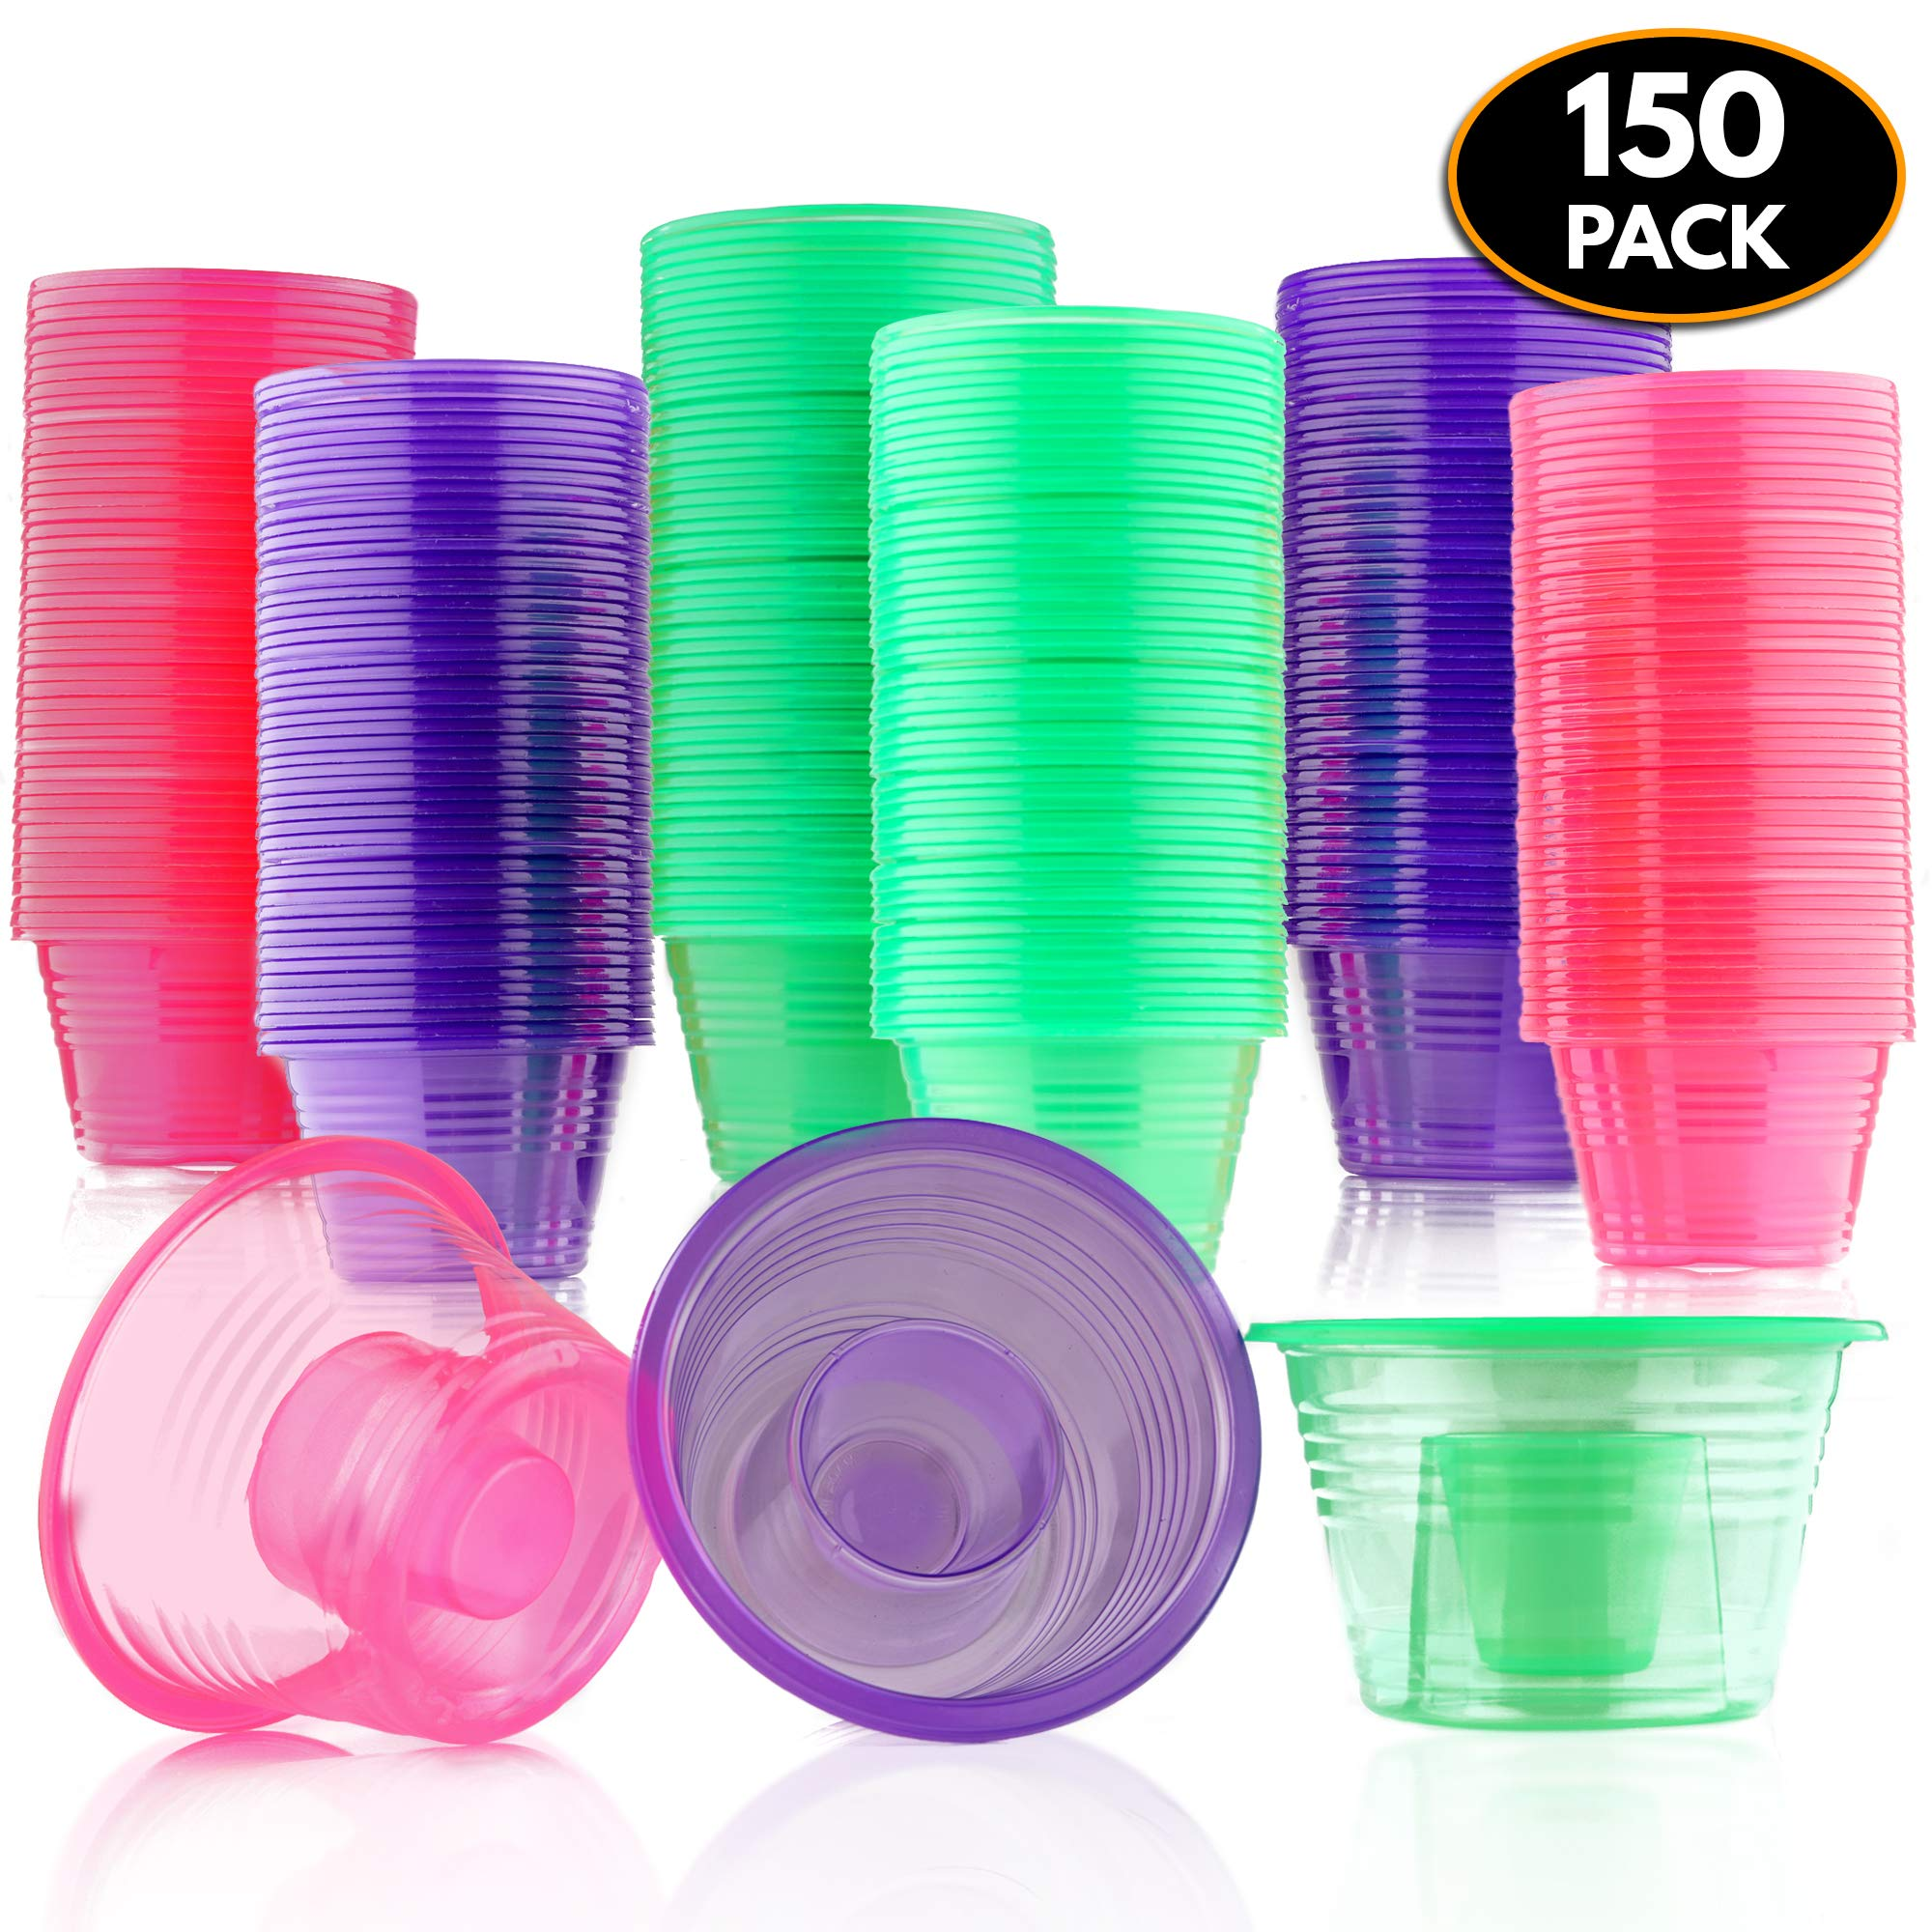 Matana 150 Disposable Bomb Shot Glasses - Assorted Colours - Perfect for Jagermaister - Red Bull & All Types of Shots at Parties